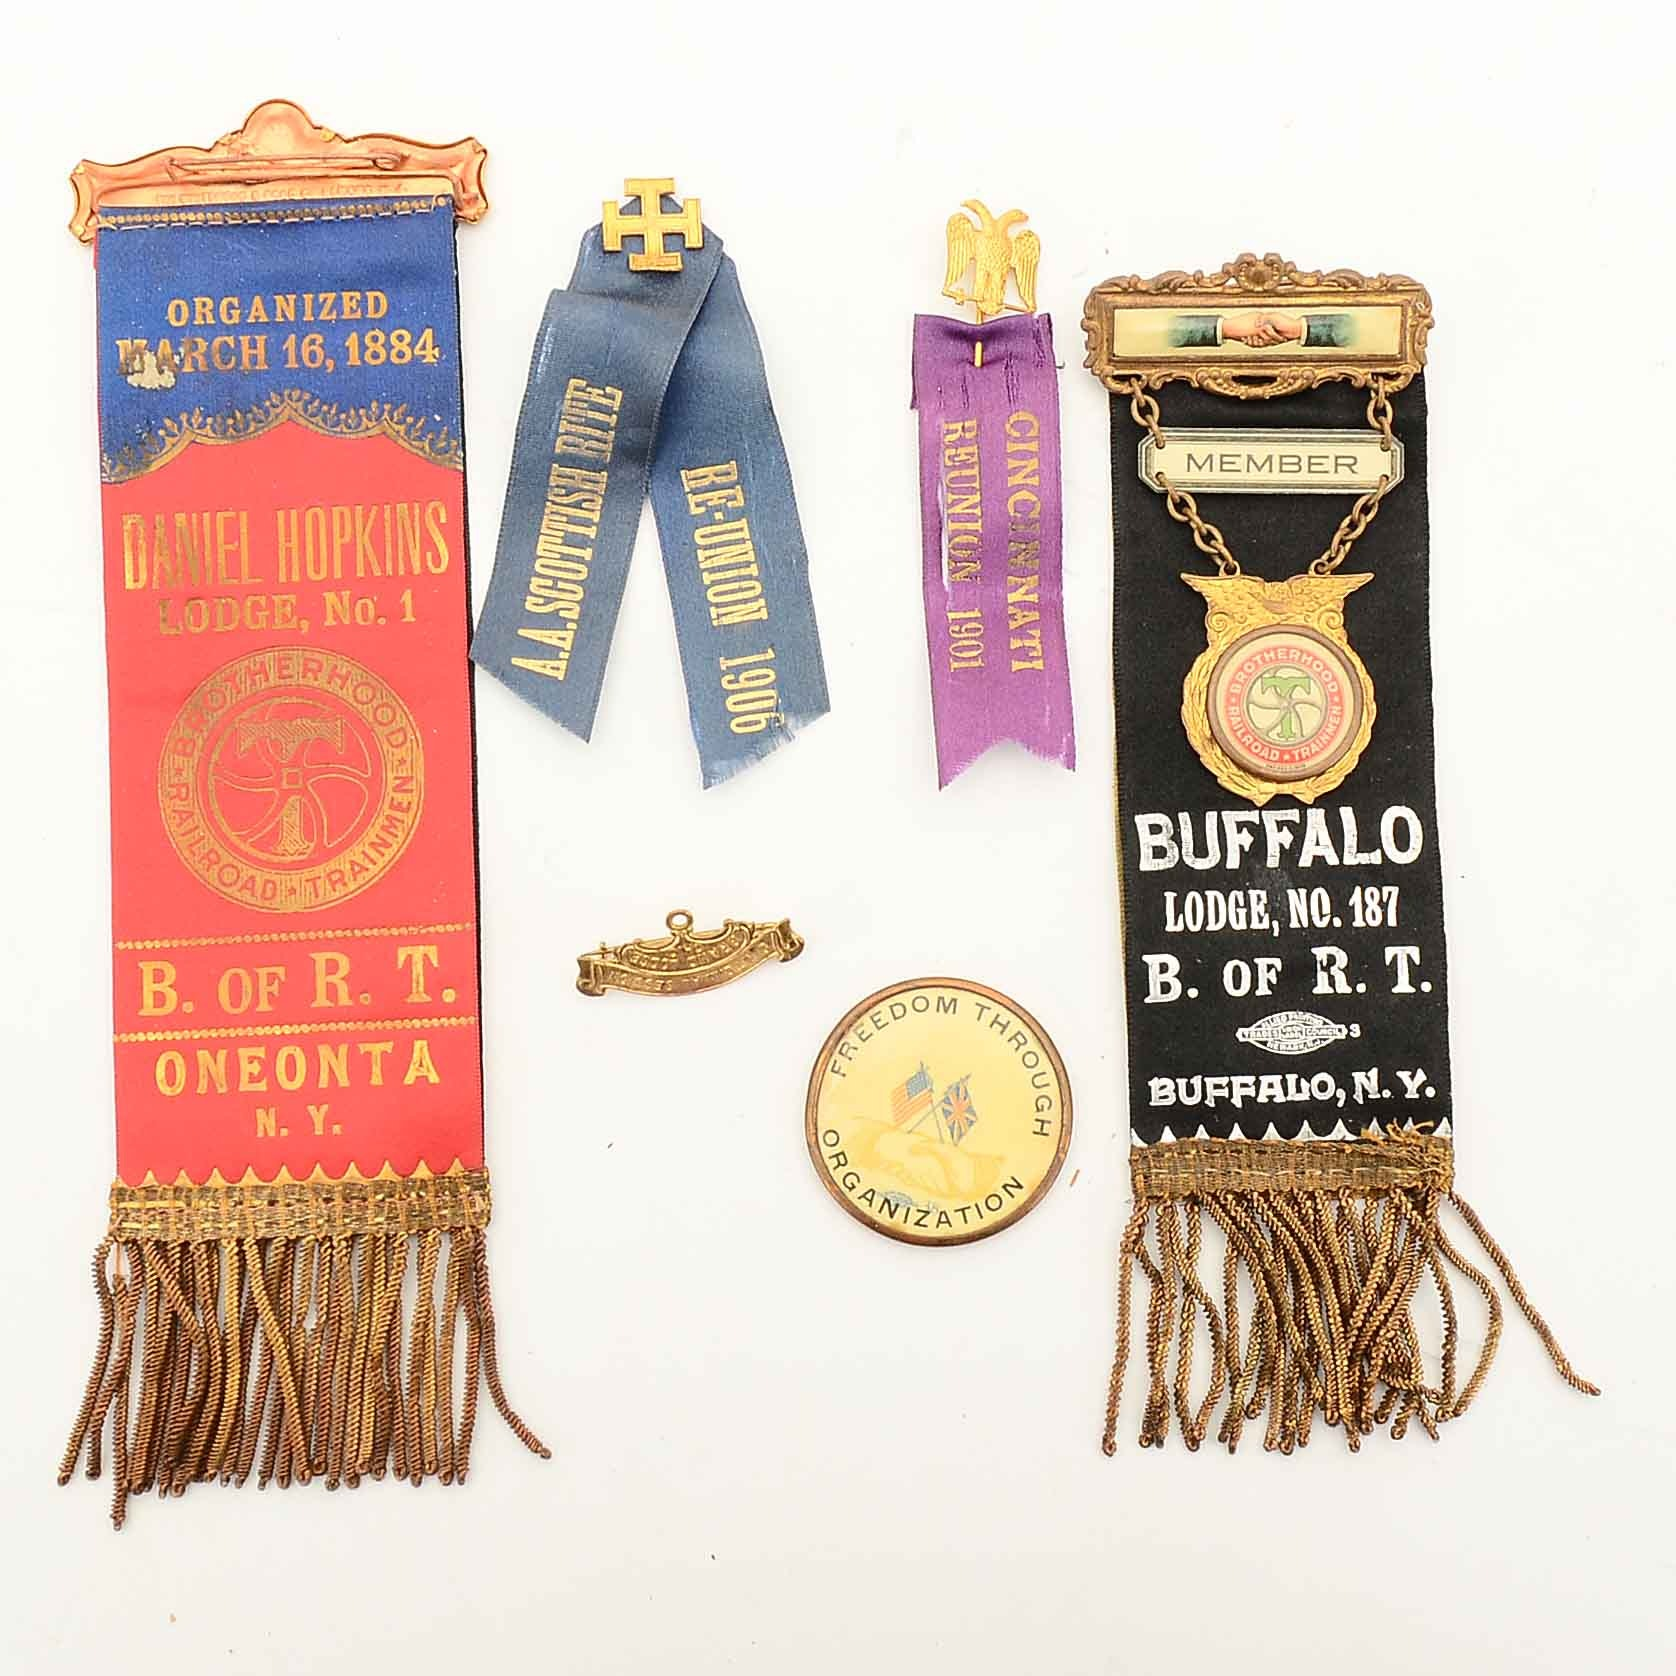 Antique Railroad Union and Masonic Ribbons and Pins